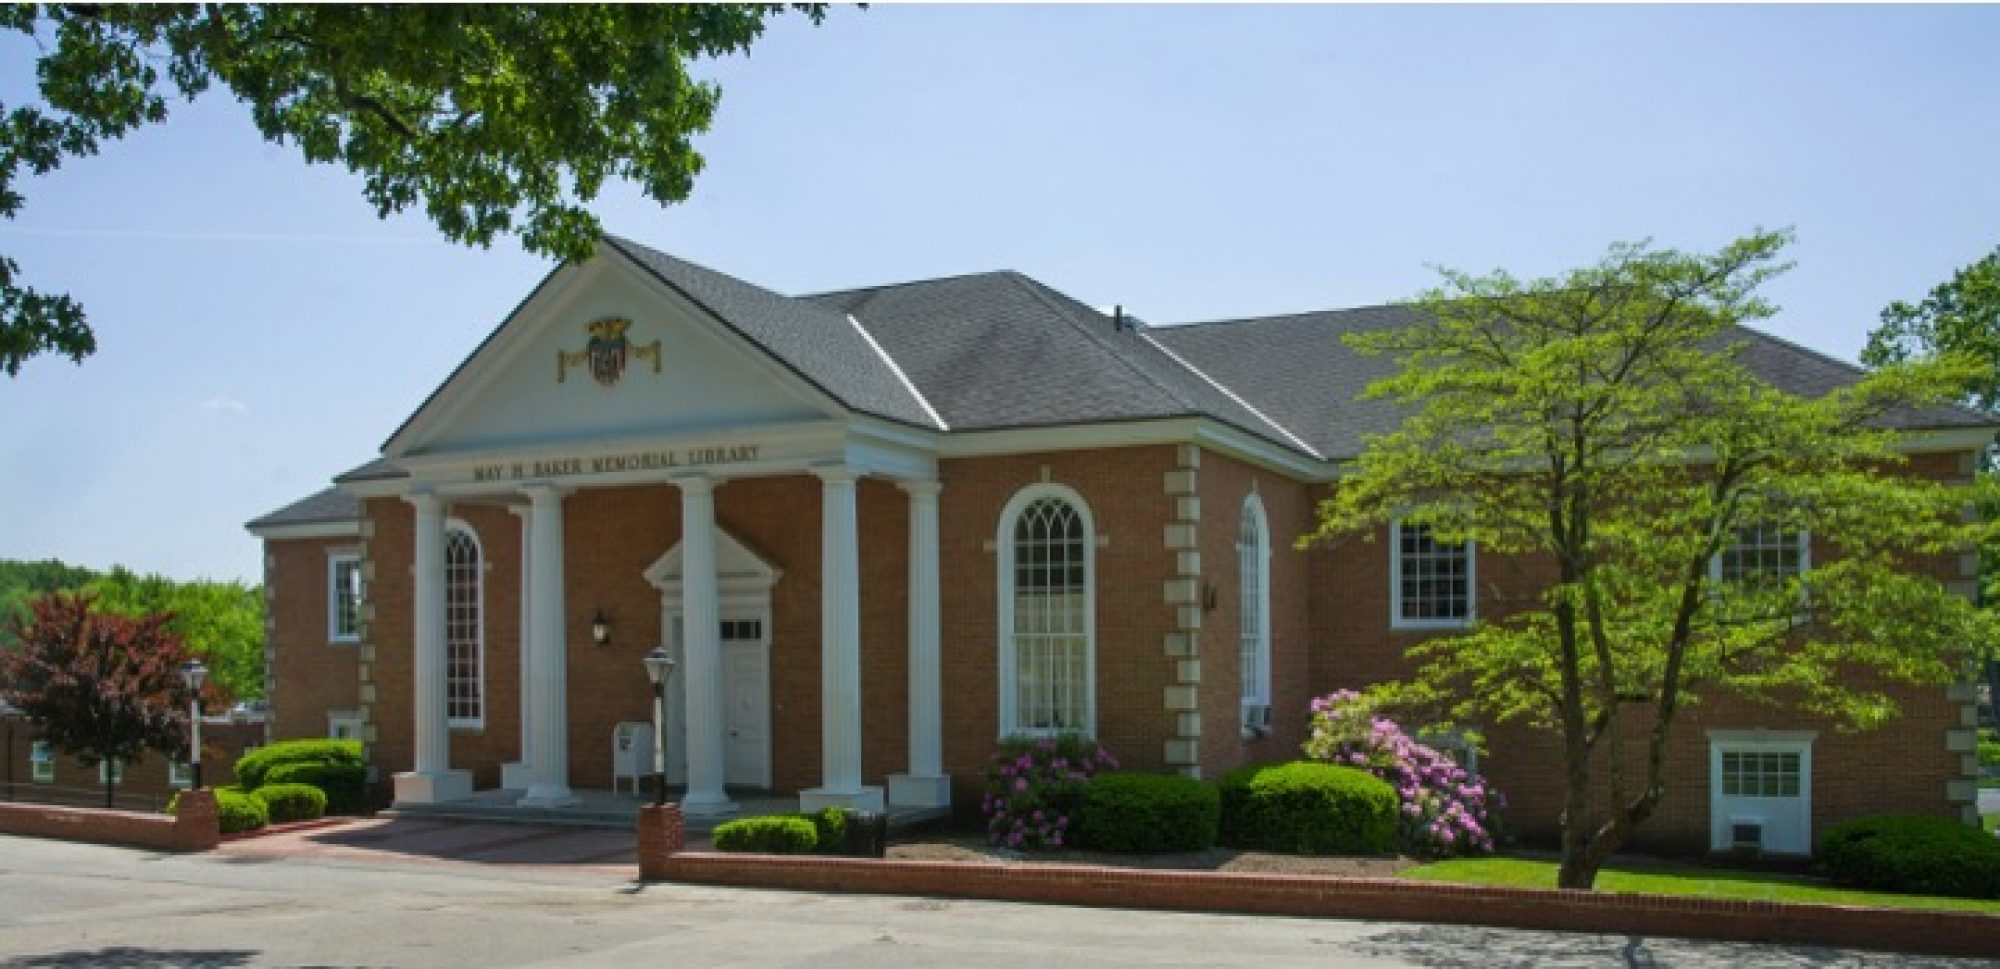 May H. Baker Memorial Library